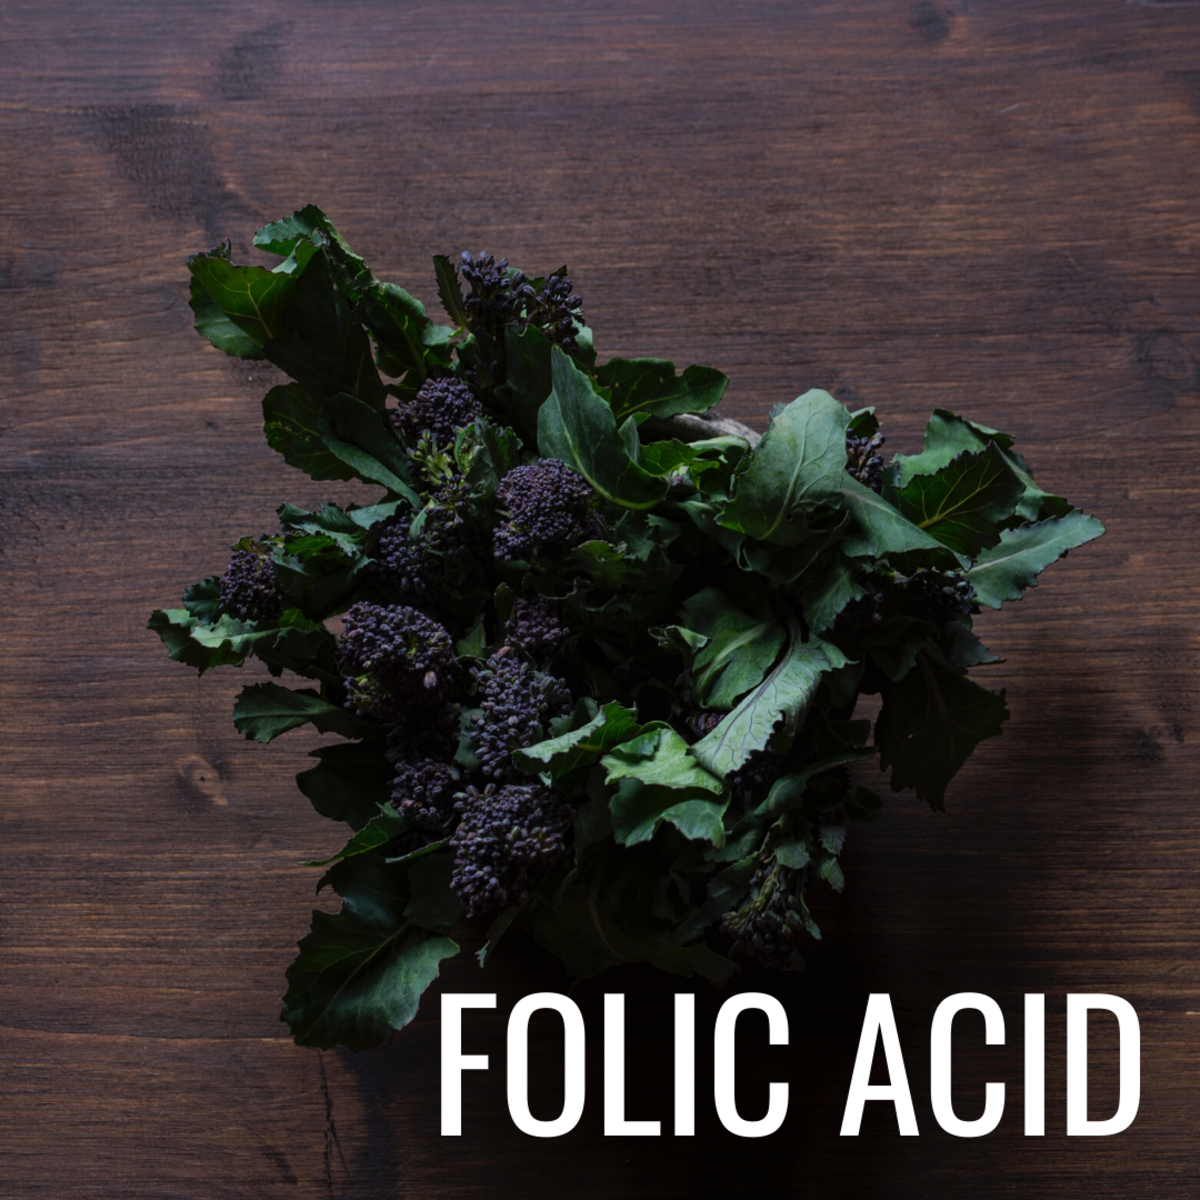 Folic acid, a type of B vitamin, is often recommended for patients with melasma.